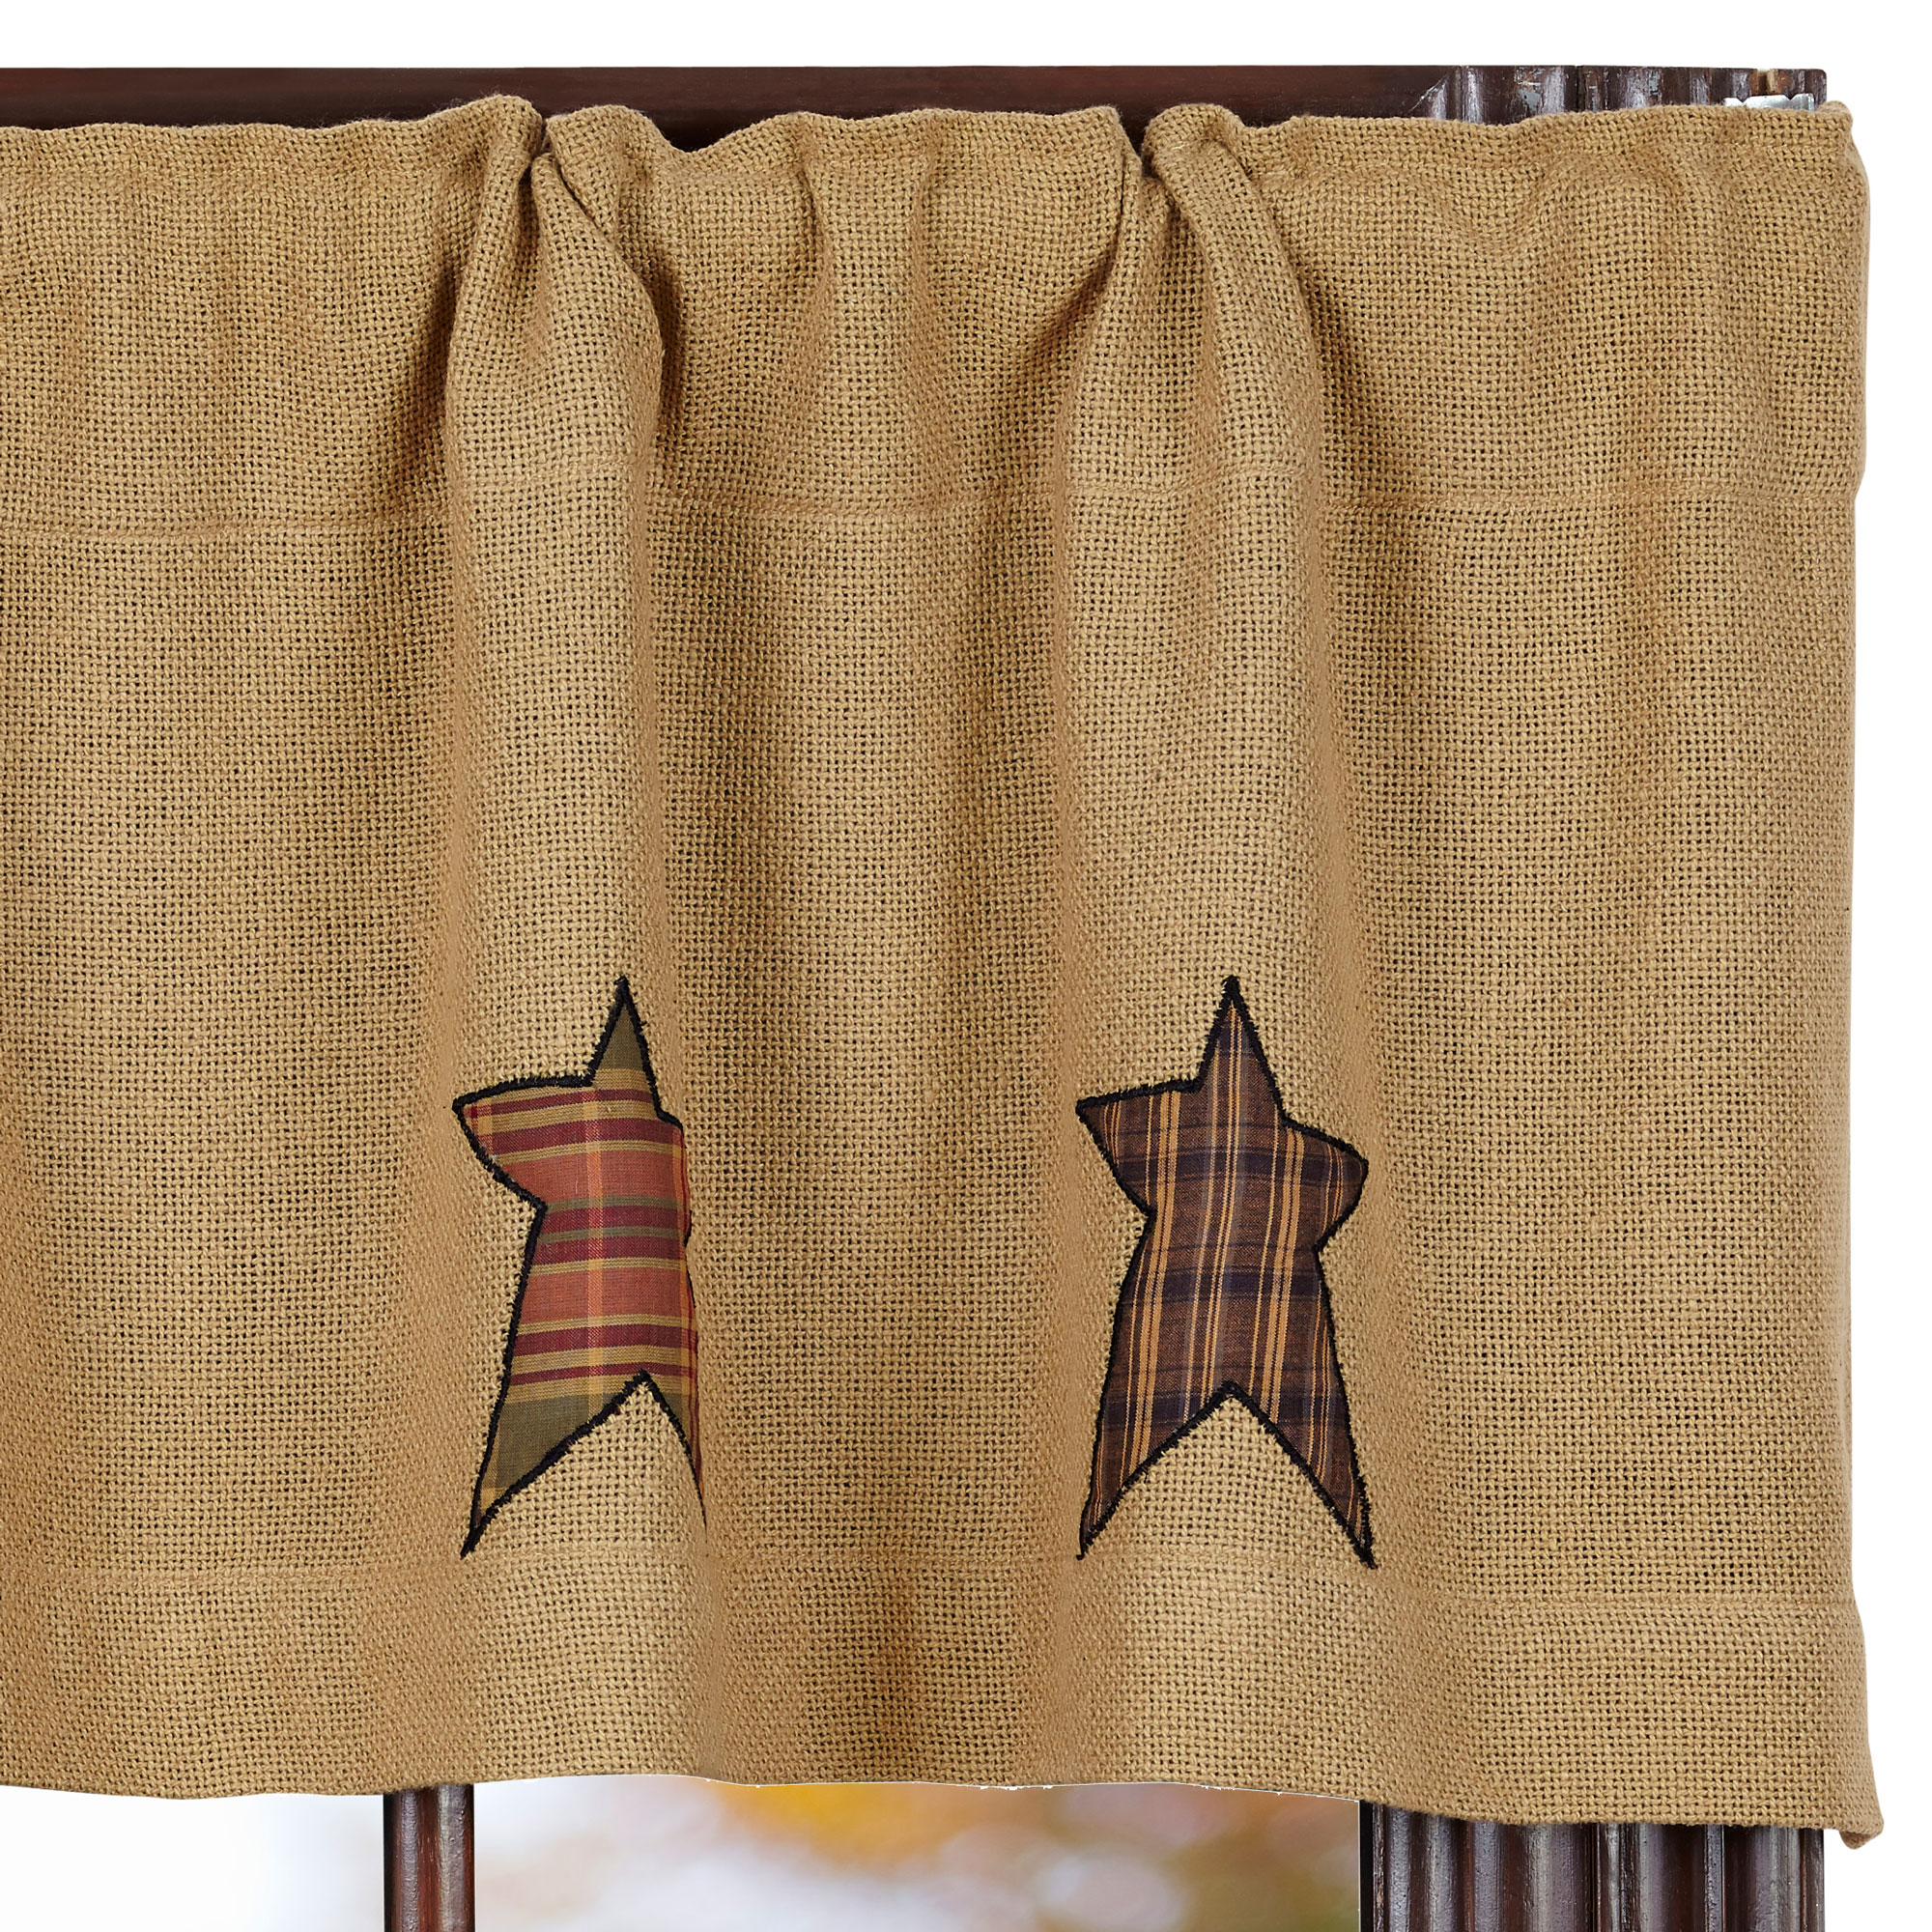 VHC-17999-Stratton-Burlap-Applique-Star-Valance-LRG